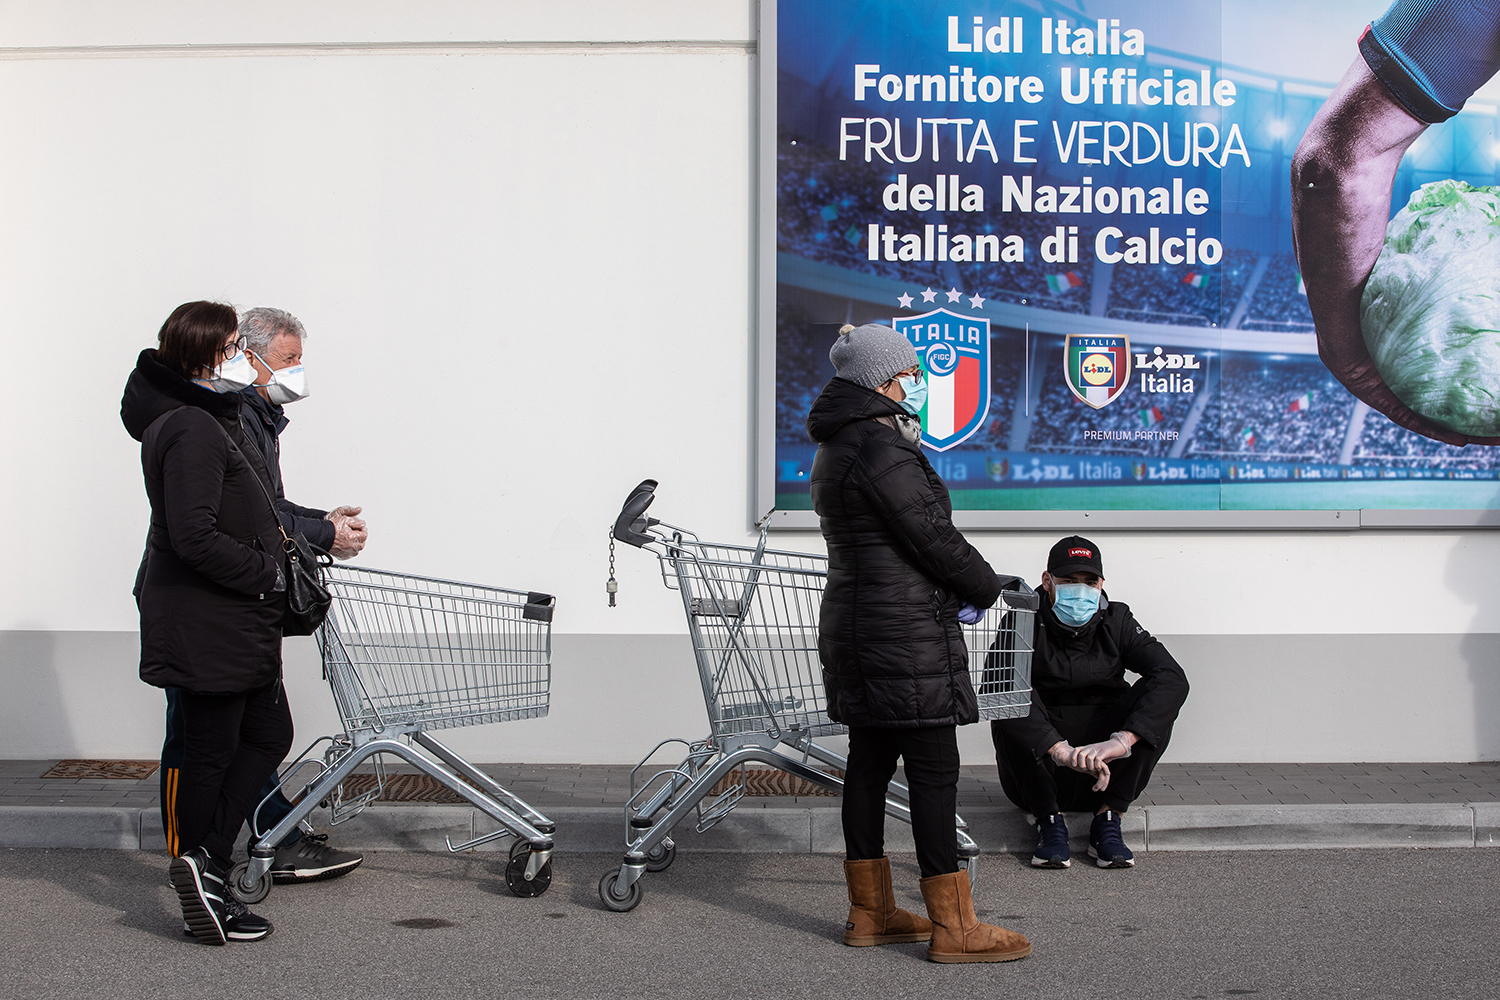 Global Fears Rise as Coronavirus Cases Rise in Italy and South Korea